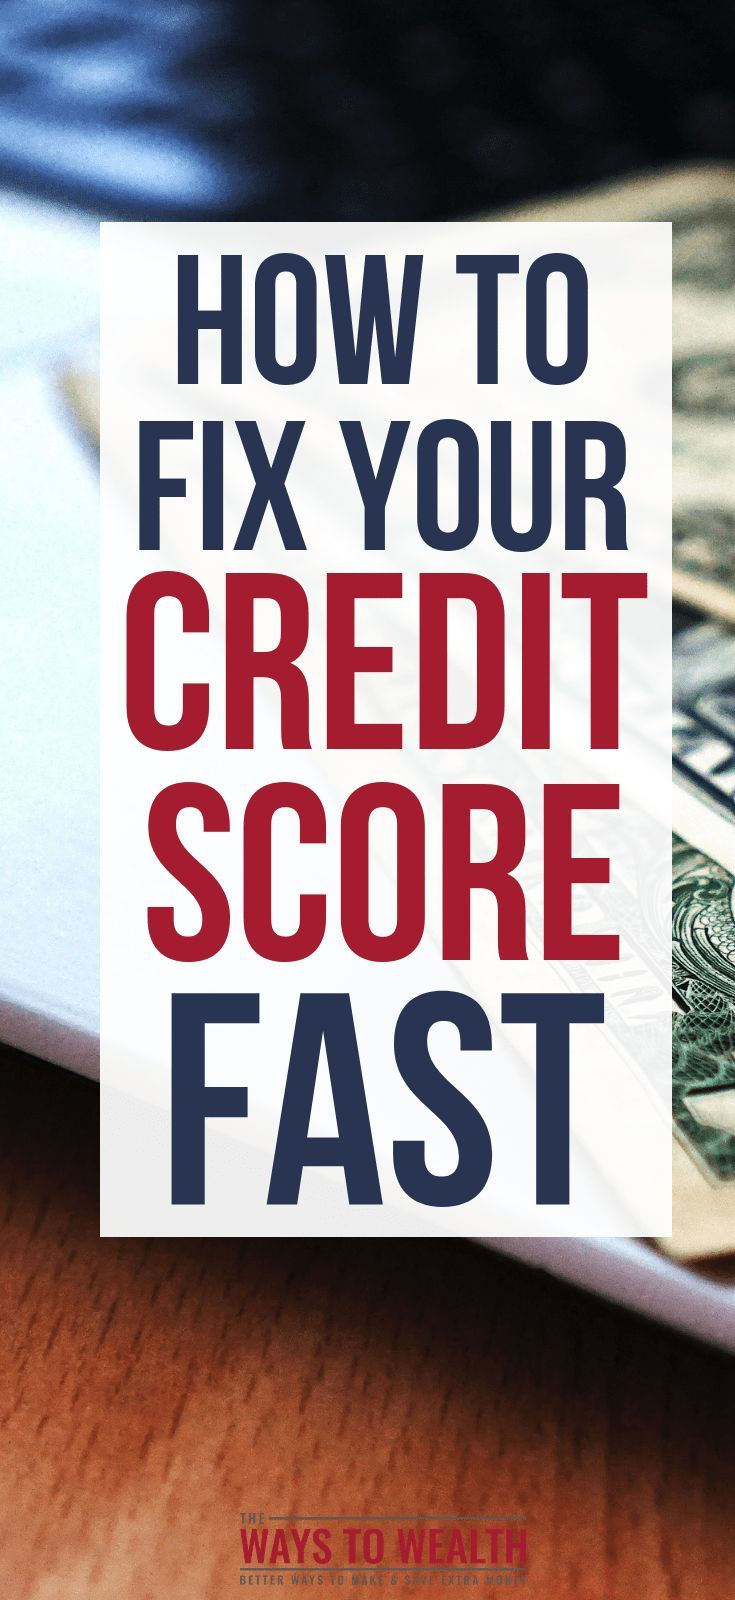 How To Repair Your Credit Yourself: 5 Quick Tips | How To ...